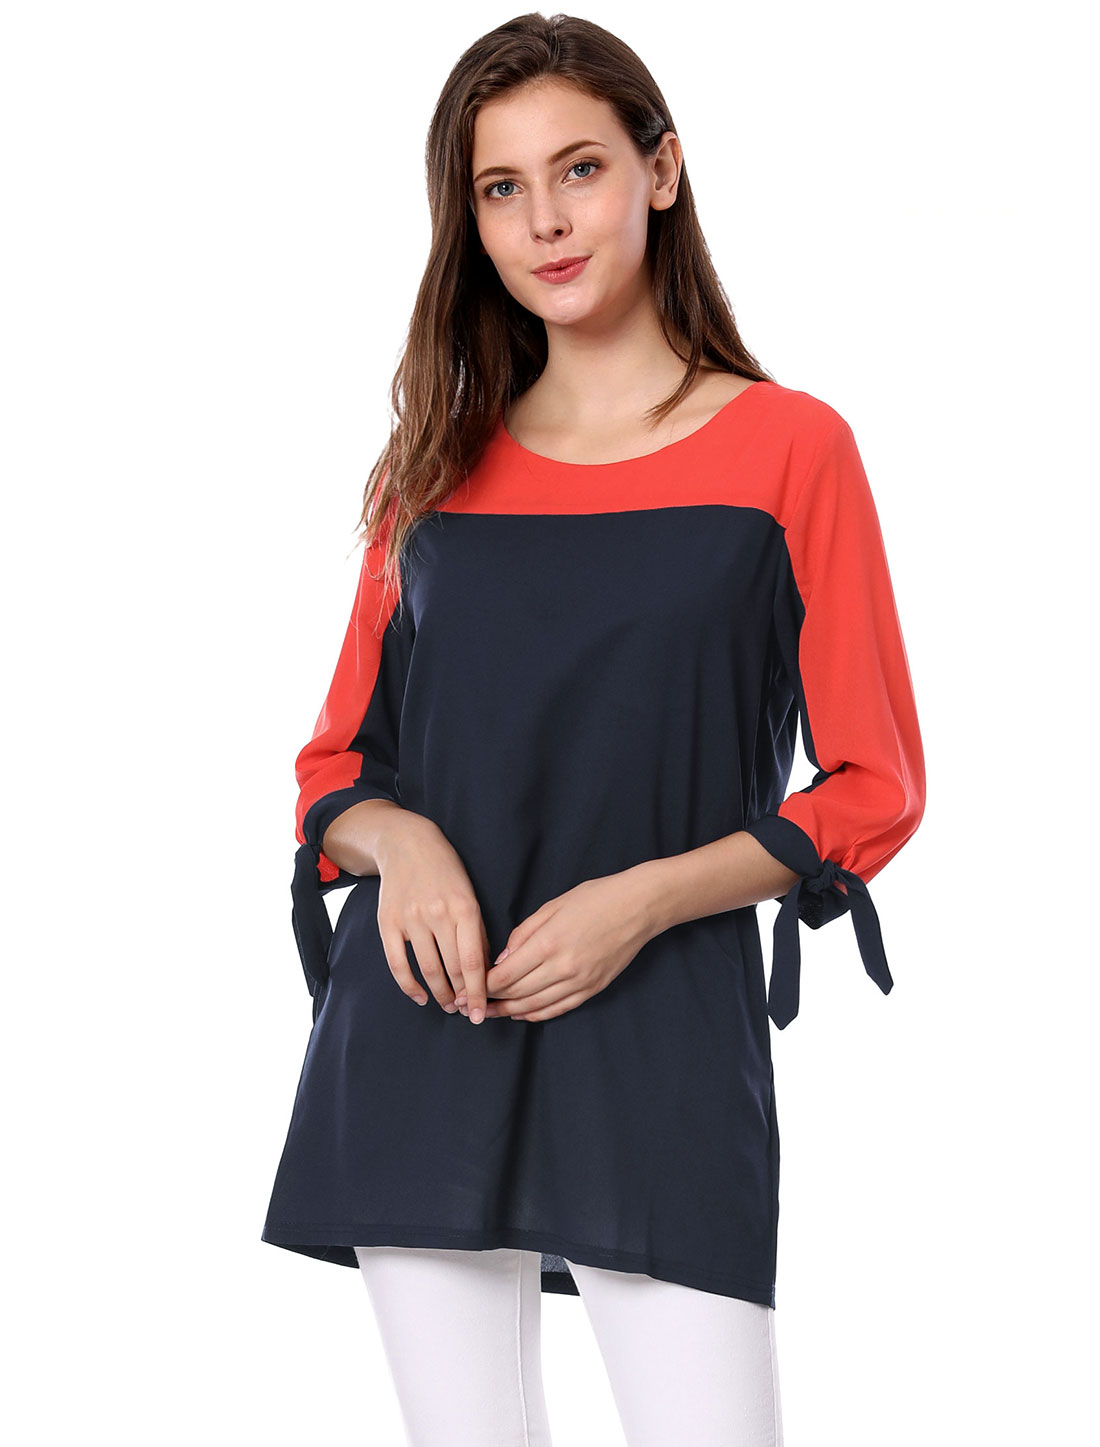 Lady NEW 3/4 Sleeve Lace Up Cuff Design Oxford-Blue Tunic Top XL